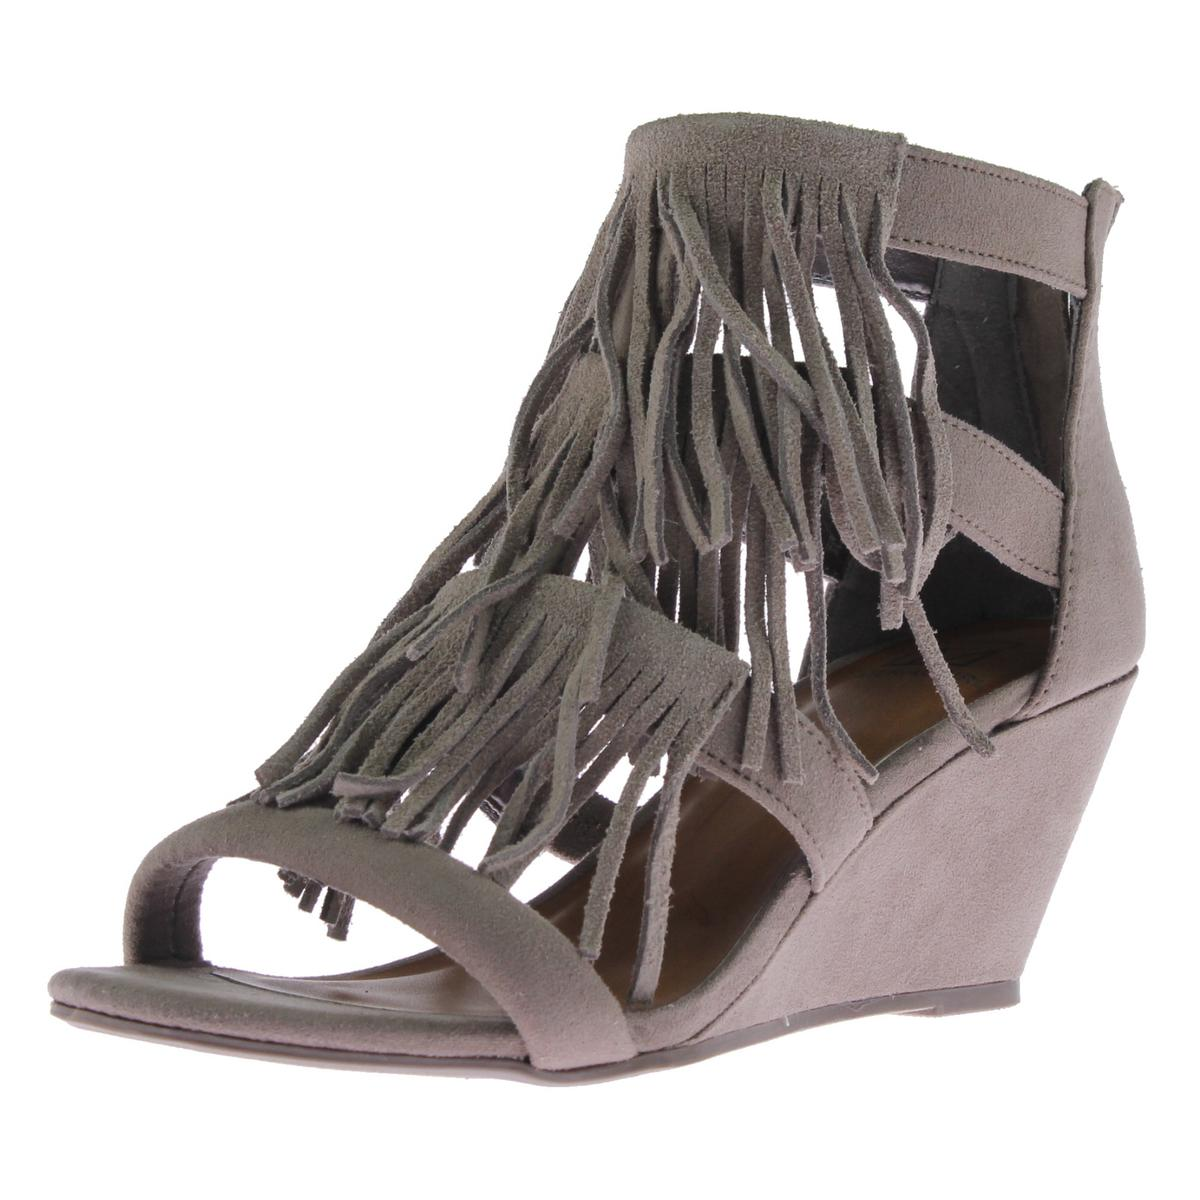 aabcf1f3558 Details about Material Girl Womens Hannah Taupe Wedge Sandals Shoes 8.5  Medium (B